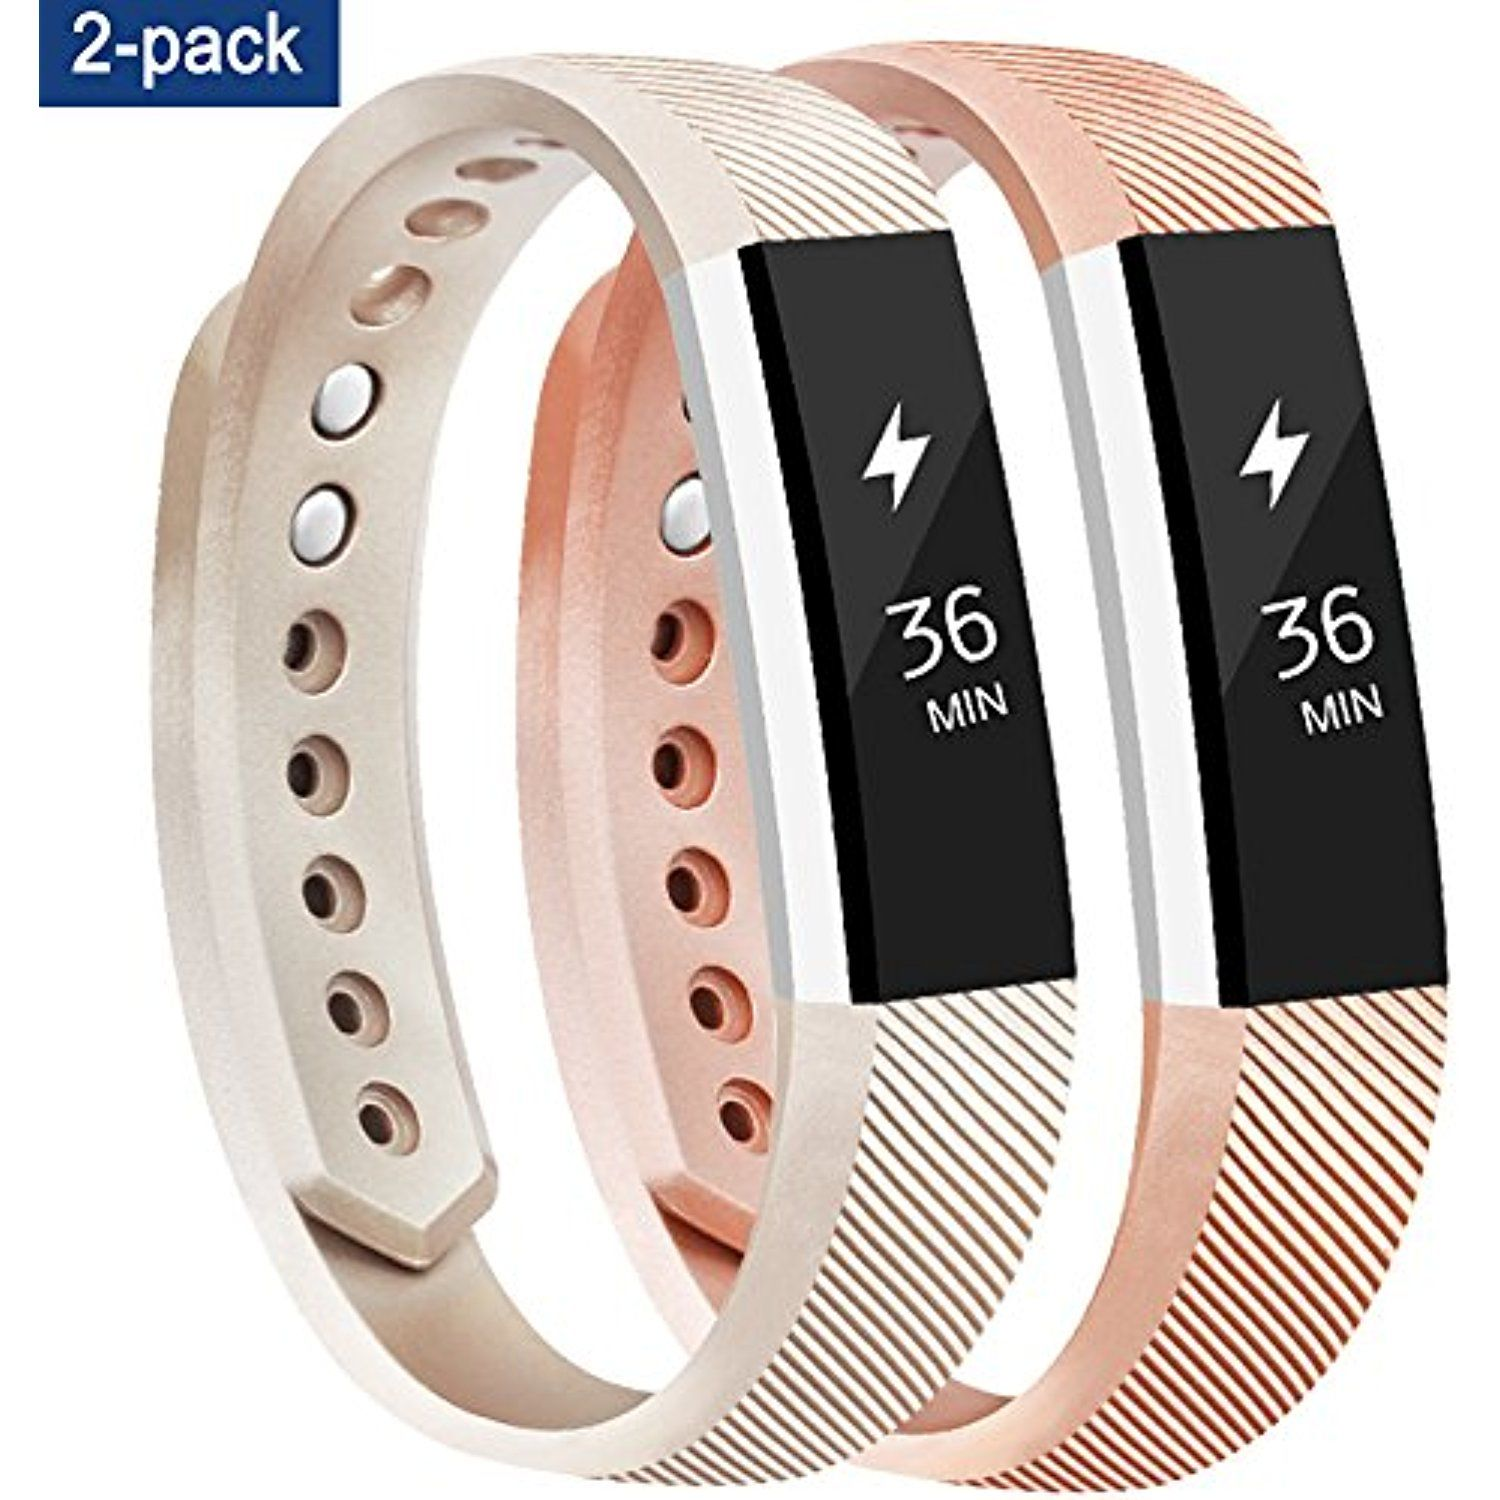 f3af12df Tobfit Fitbit Alta HR Bands for Women and Men, Newest Style - Smooth TPU  Rose Gold and Gold Classic Fitbit Alta Watch Accessories Wristbands with  Metal ...